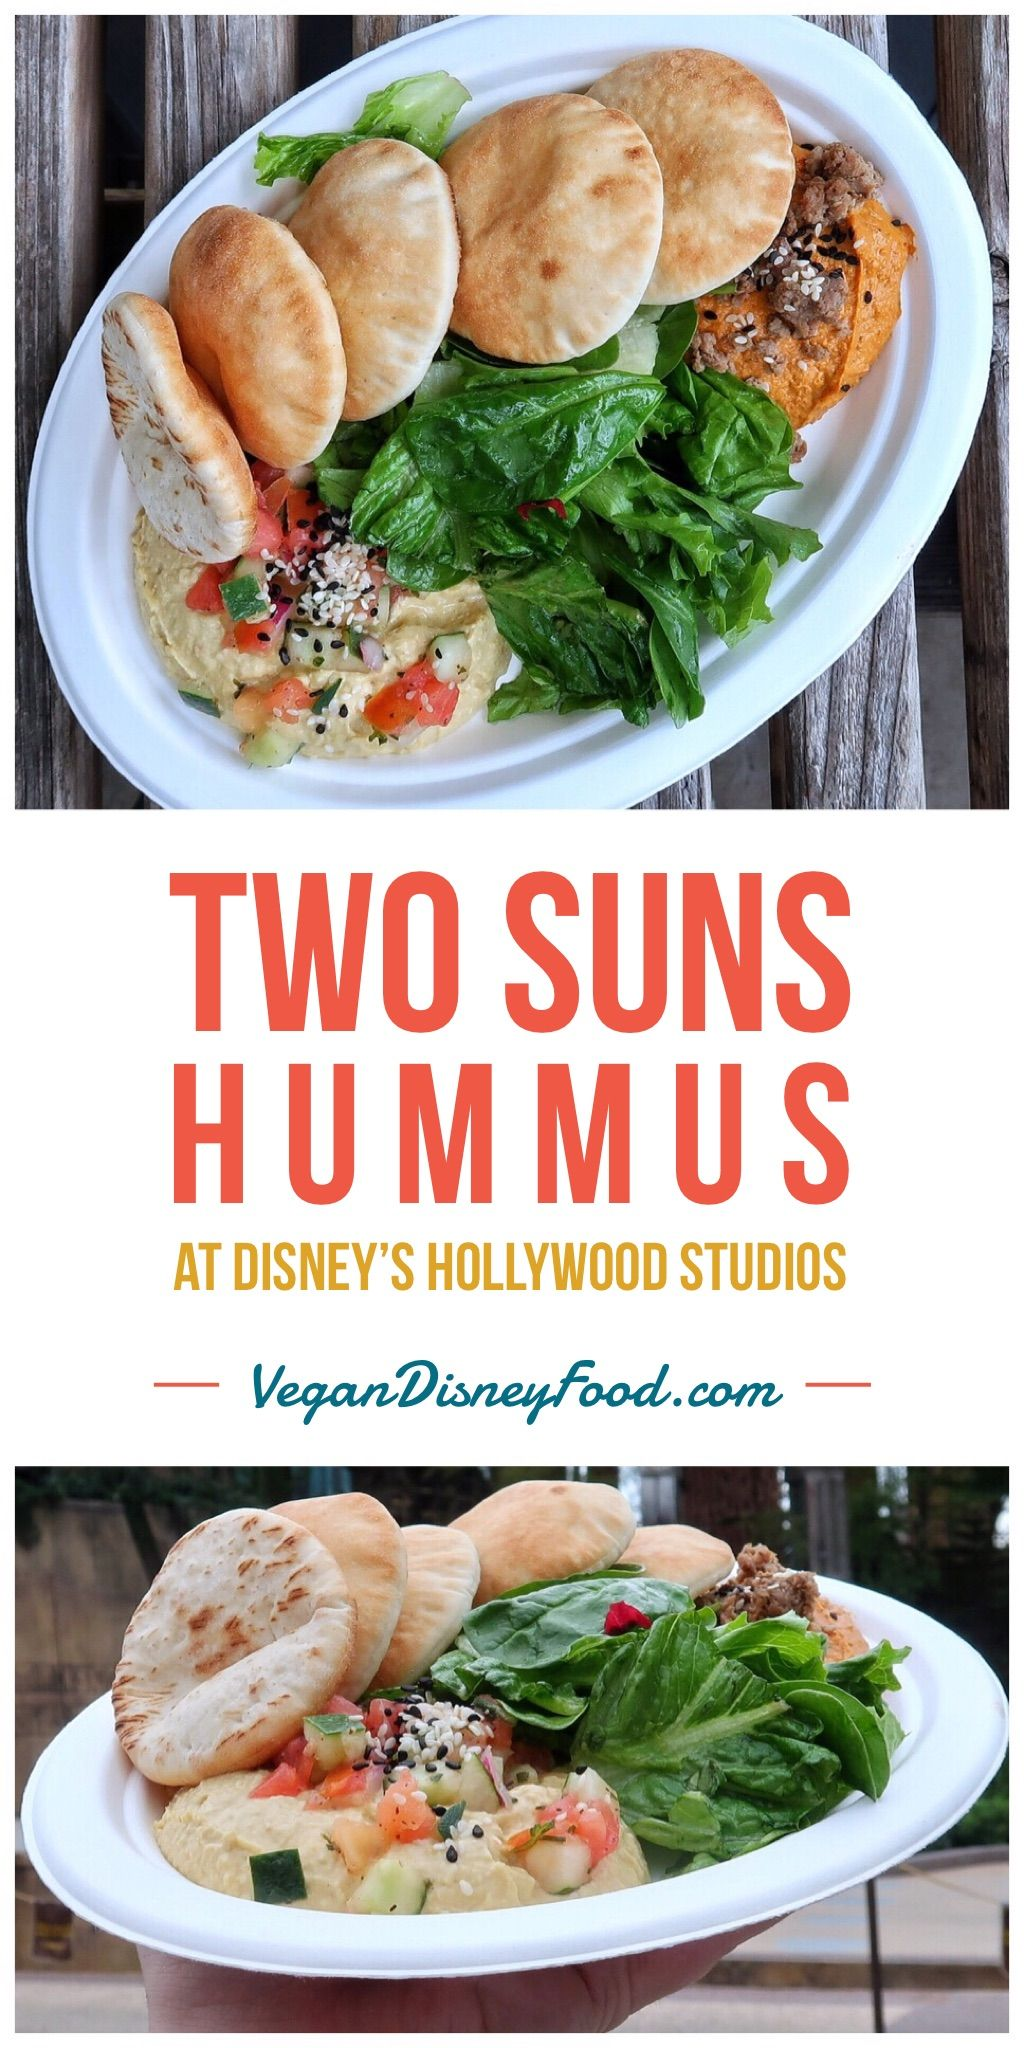 Vegan Two Suns Hummus At Backlot Express In Disney S Hollywood Studios At Walt Disney World Spring Mix Salad Hollywood Studios Disney Salad Mix